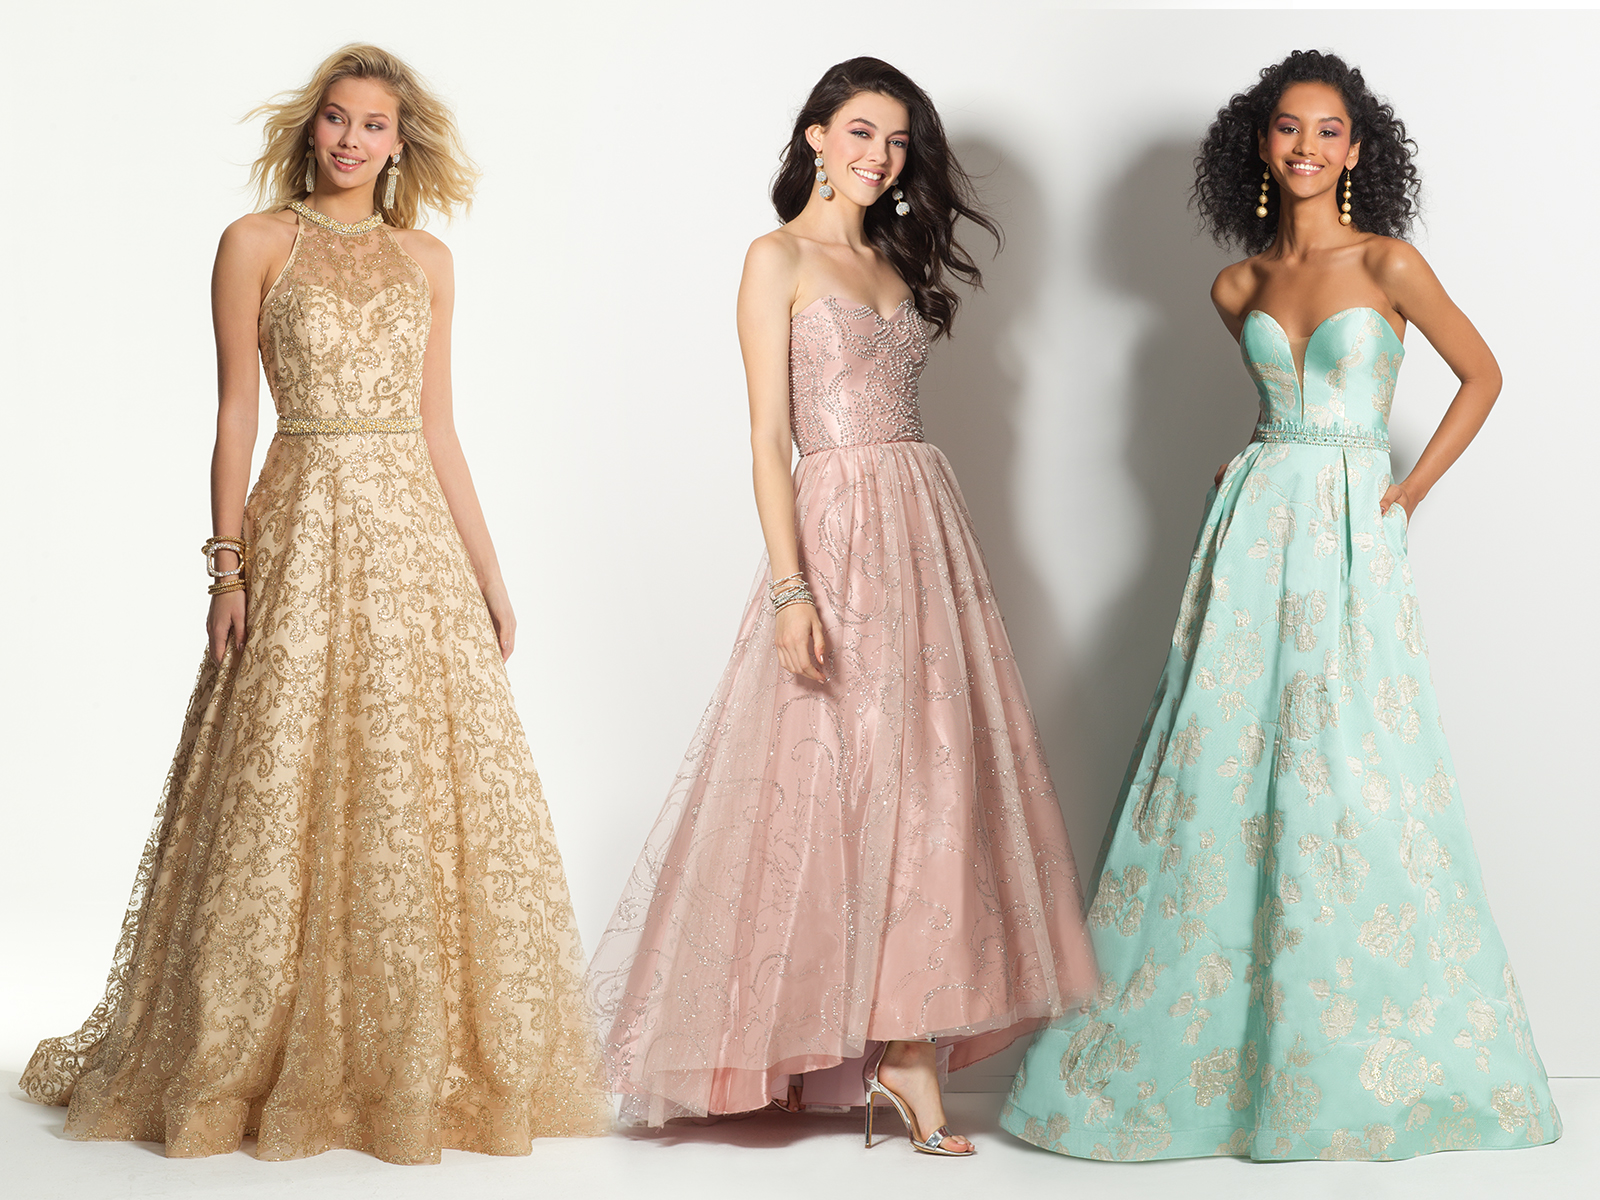 Prom Dresses by Camille La Vie